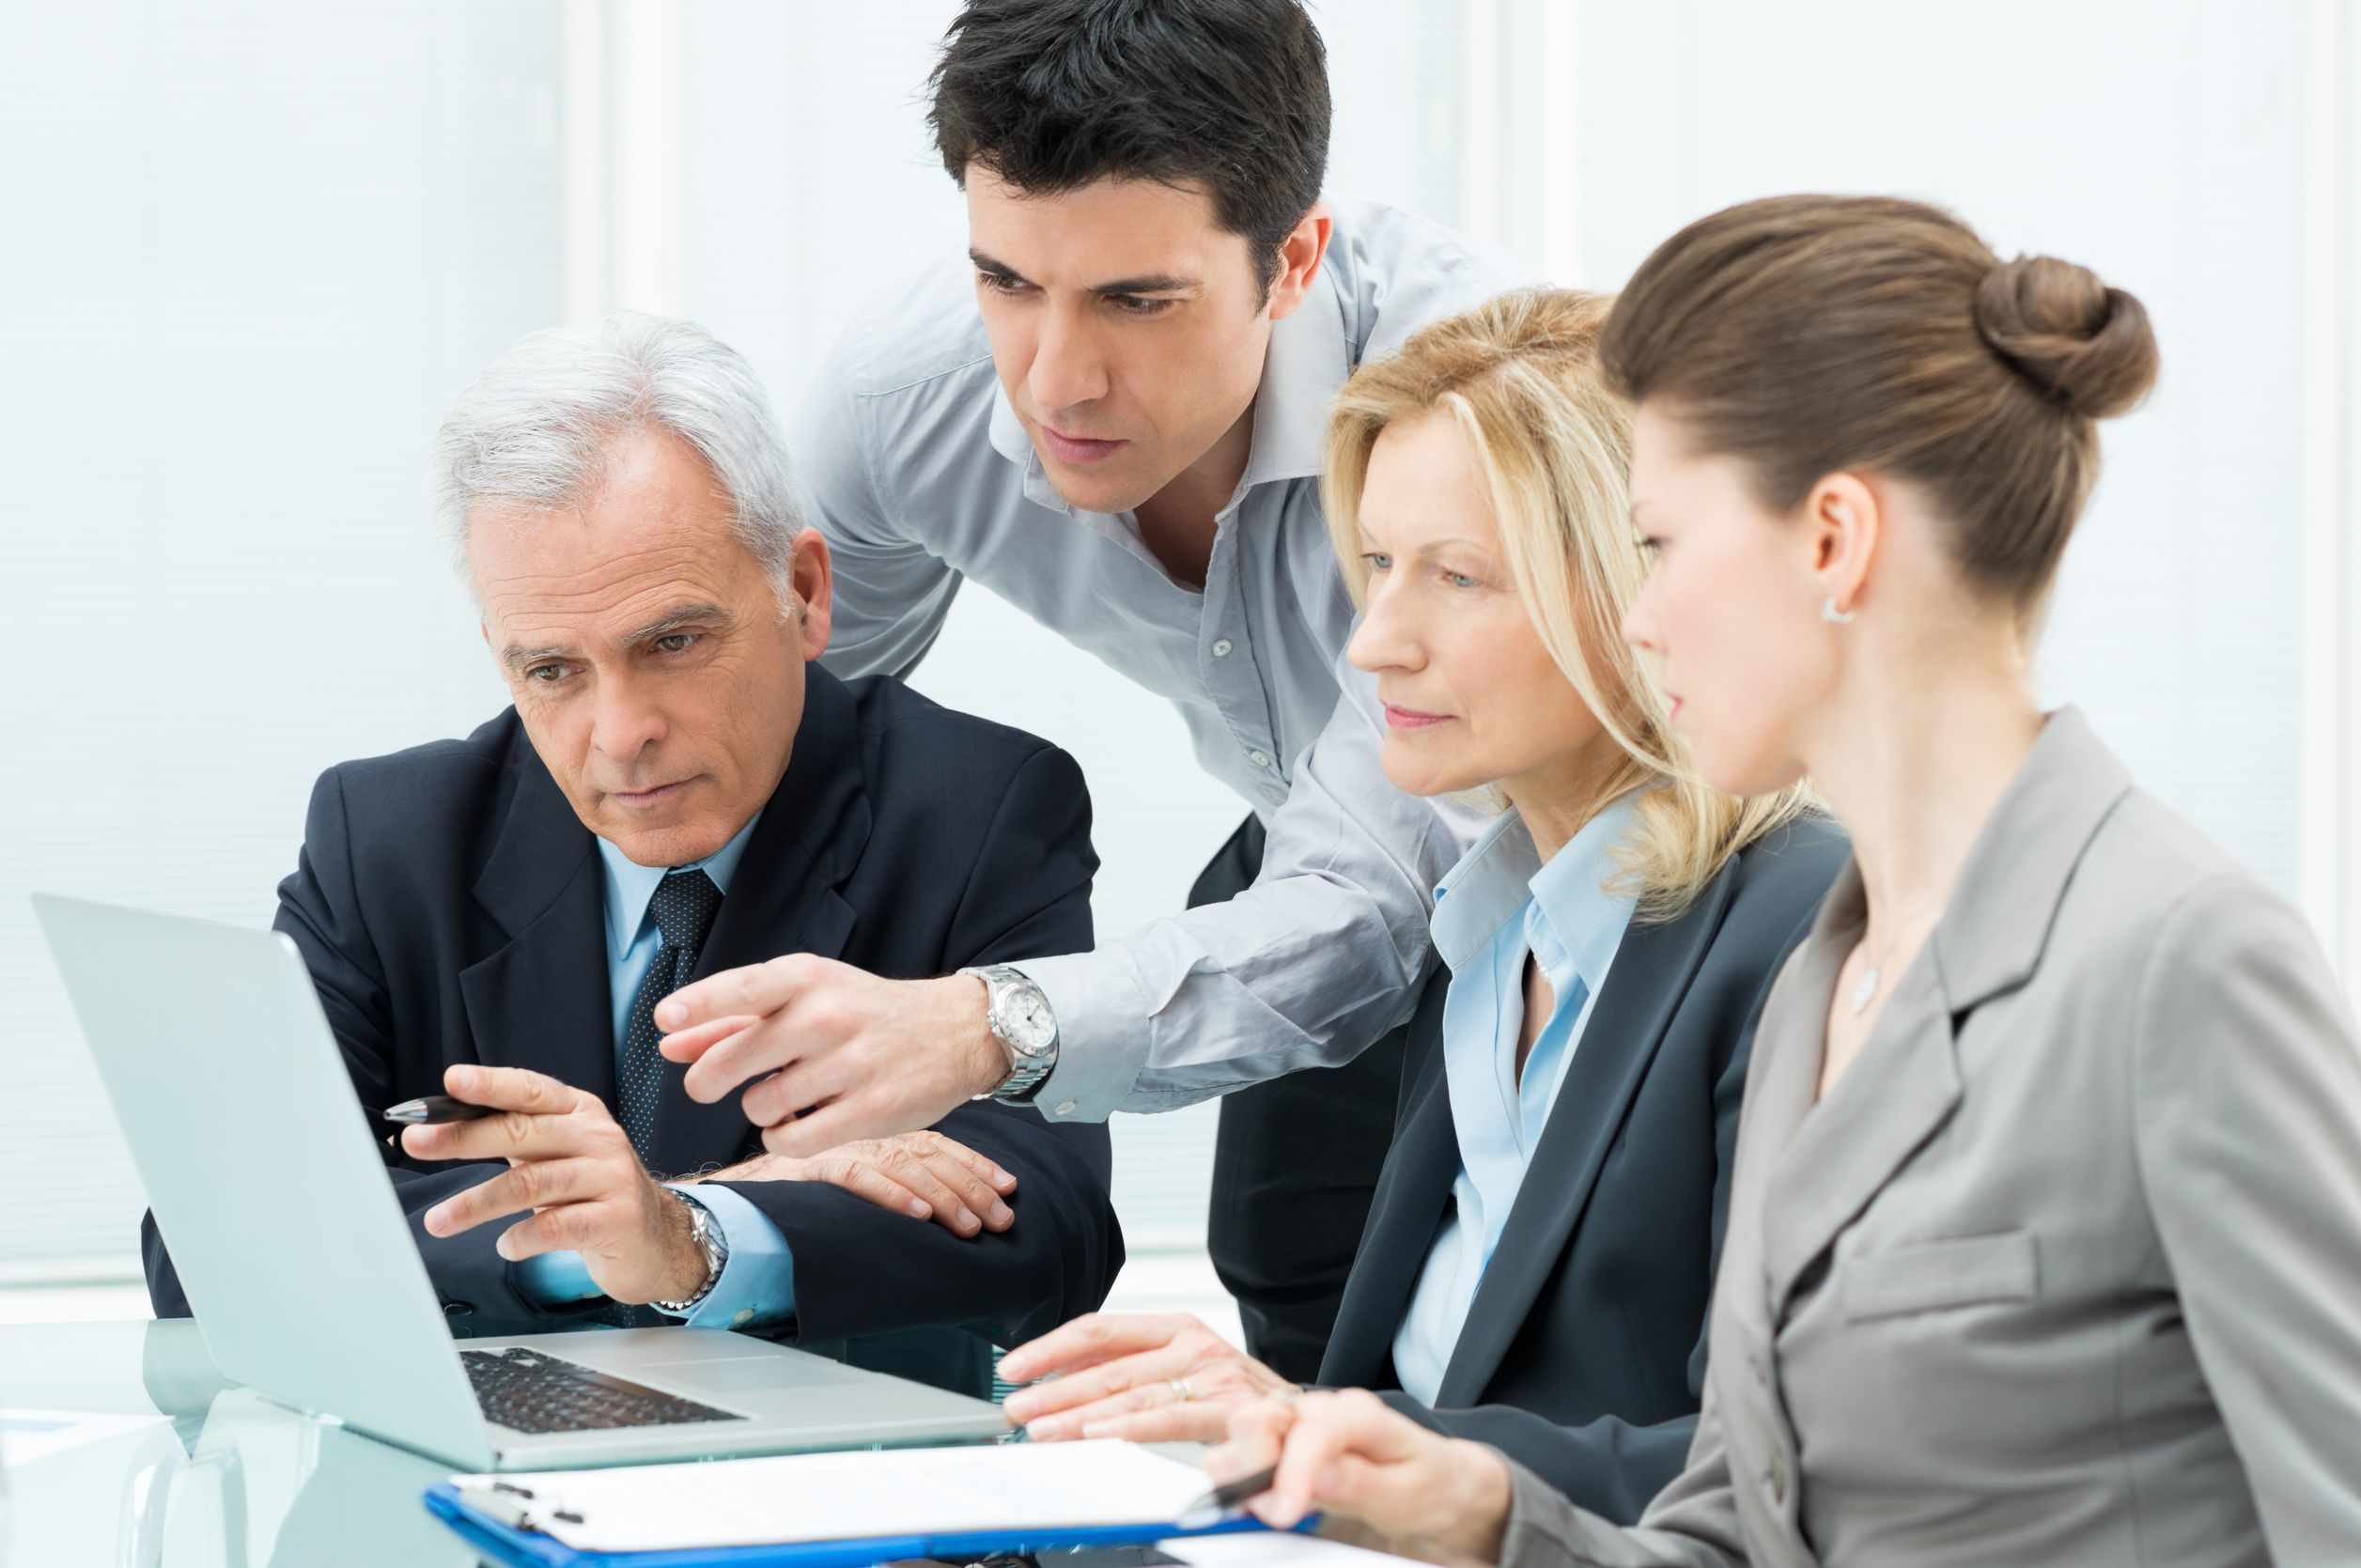 Business planning image